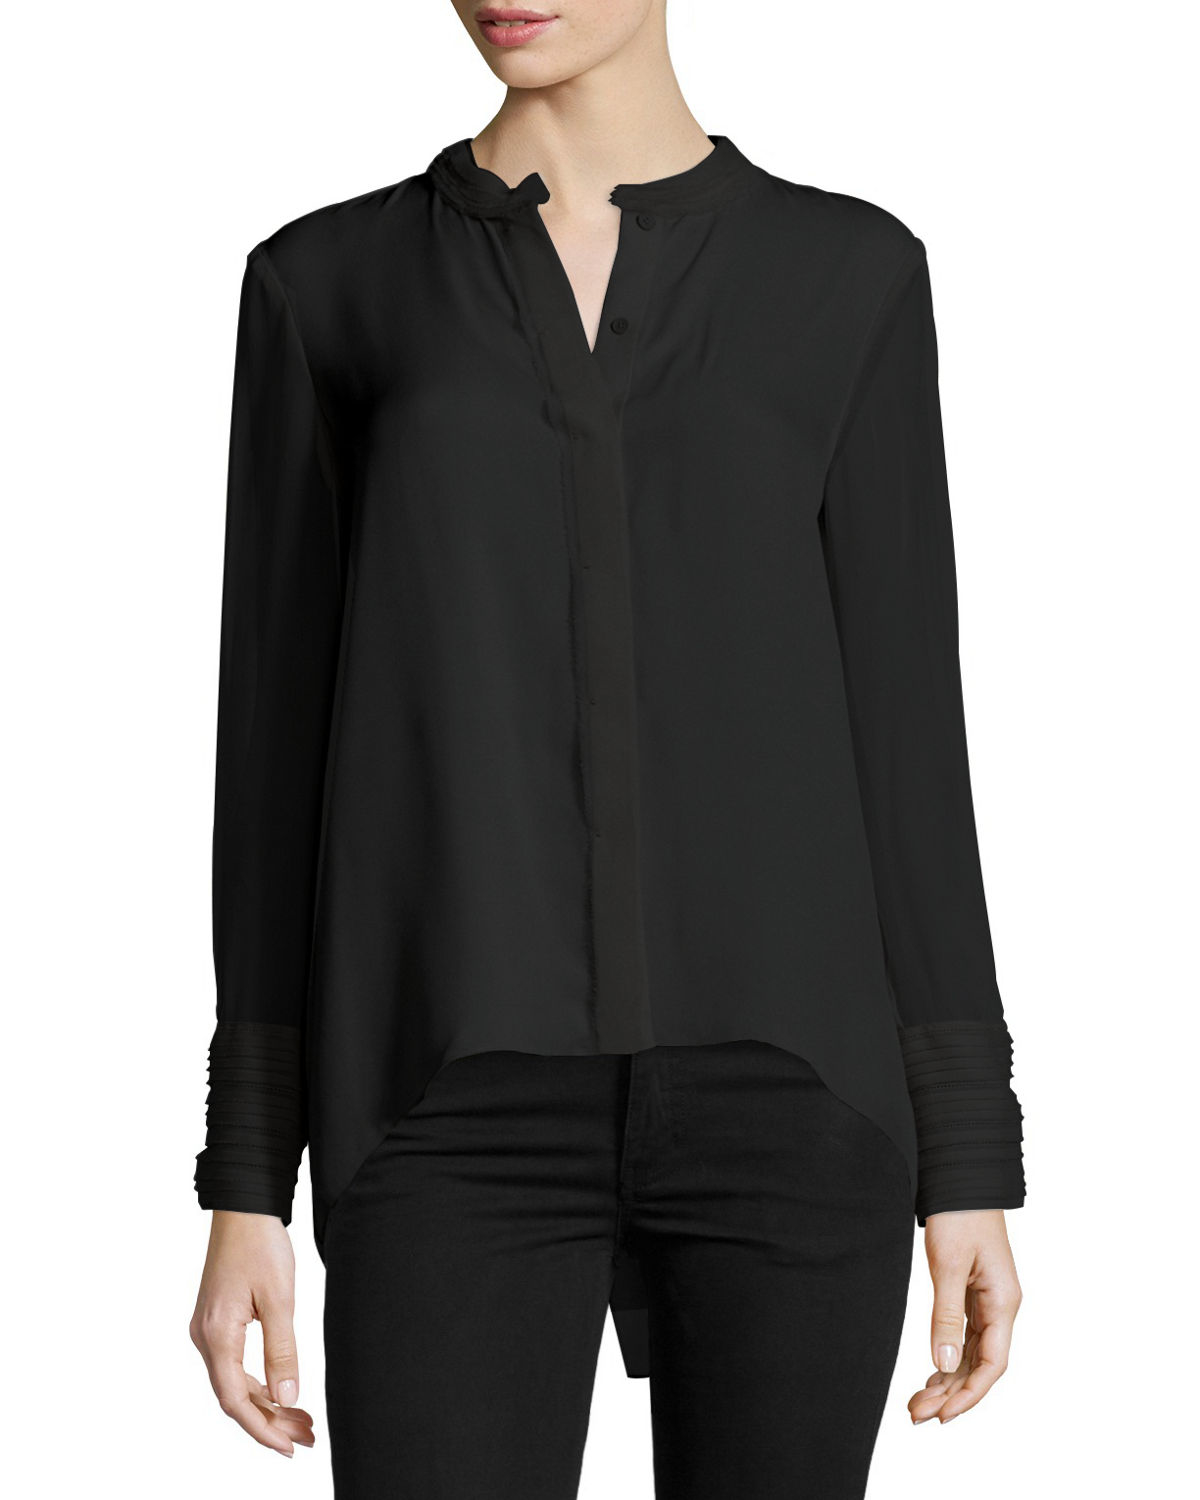 Buy low price, high quality long sleeve satin blouse with worldwide shipping on disborunmaba.ga